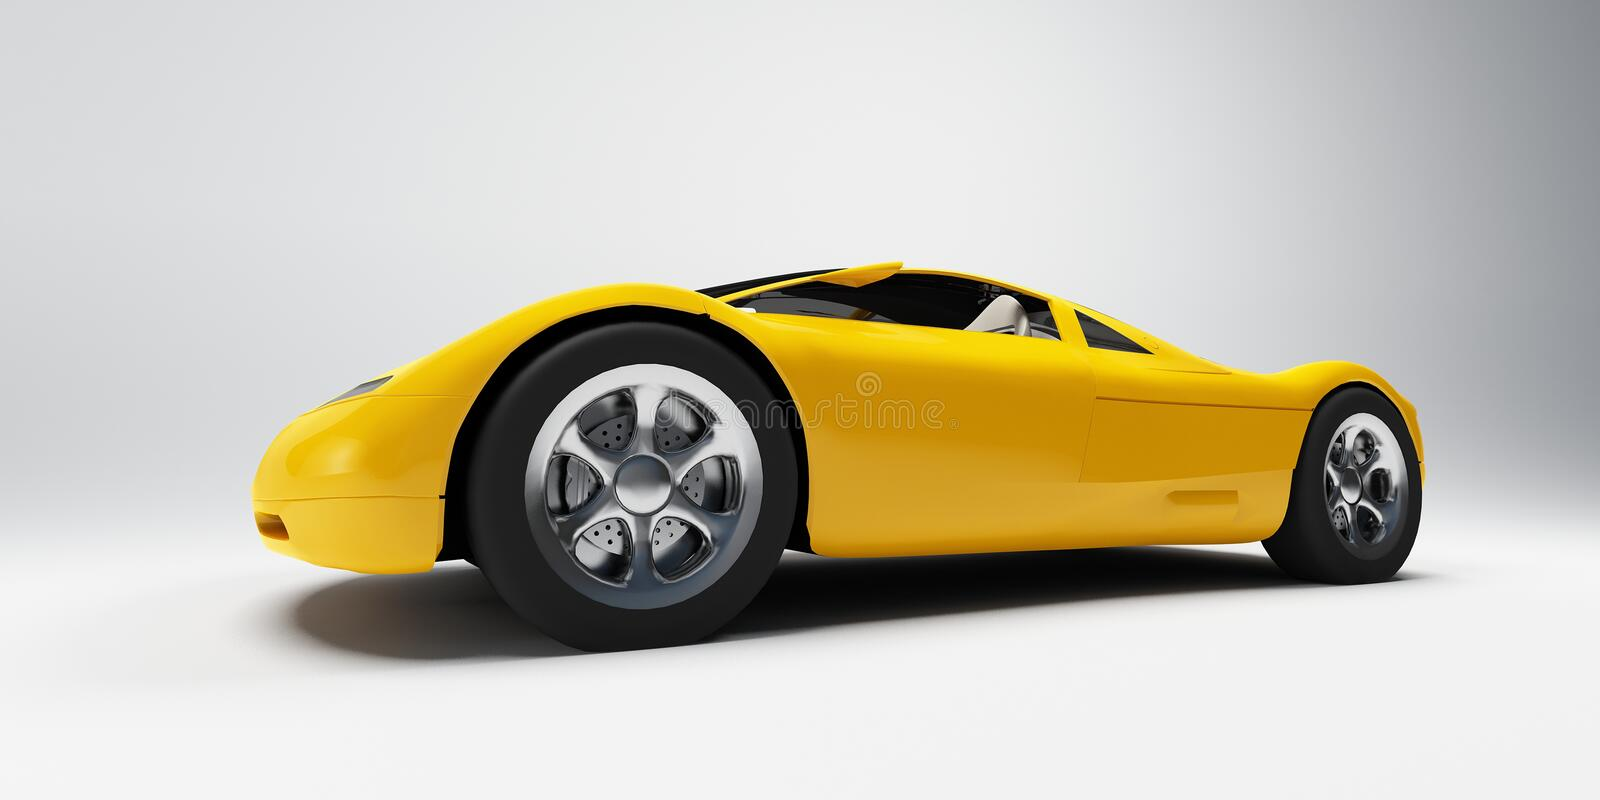 Sports car. Yellow sports car frontal view on a neutral background royalty free illustration